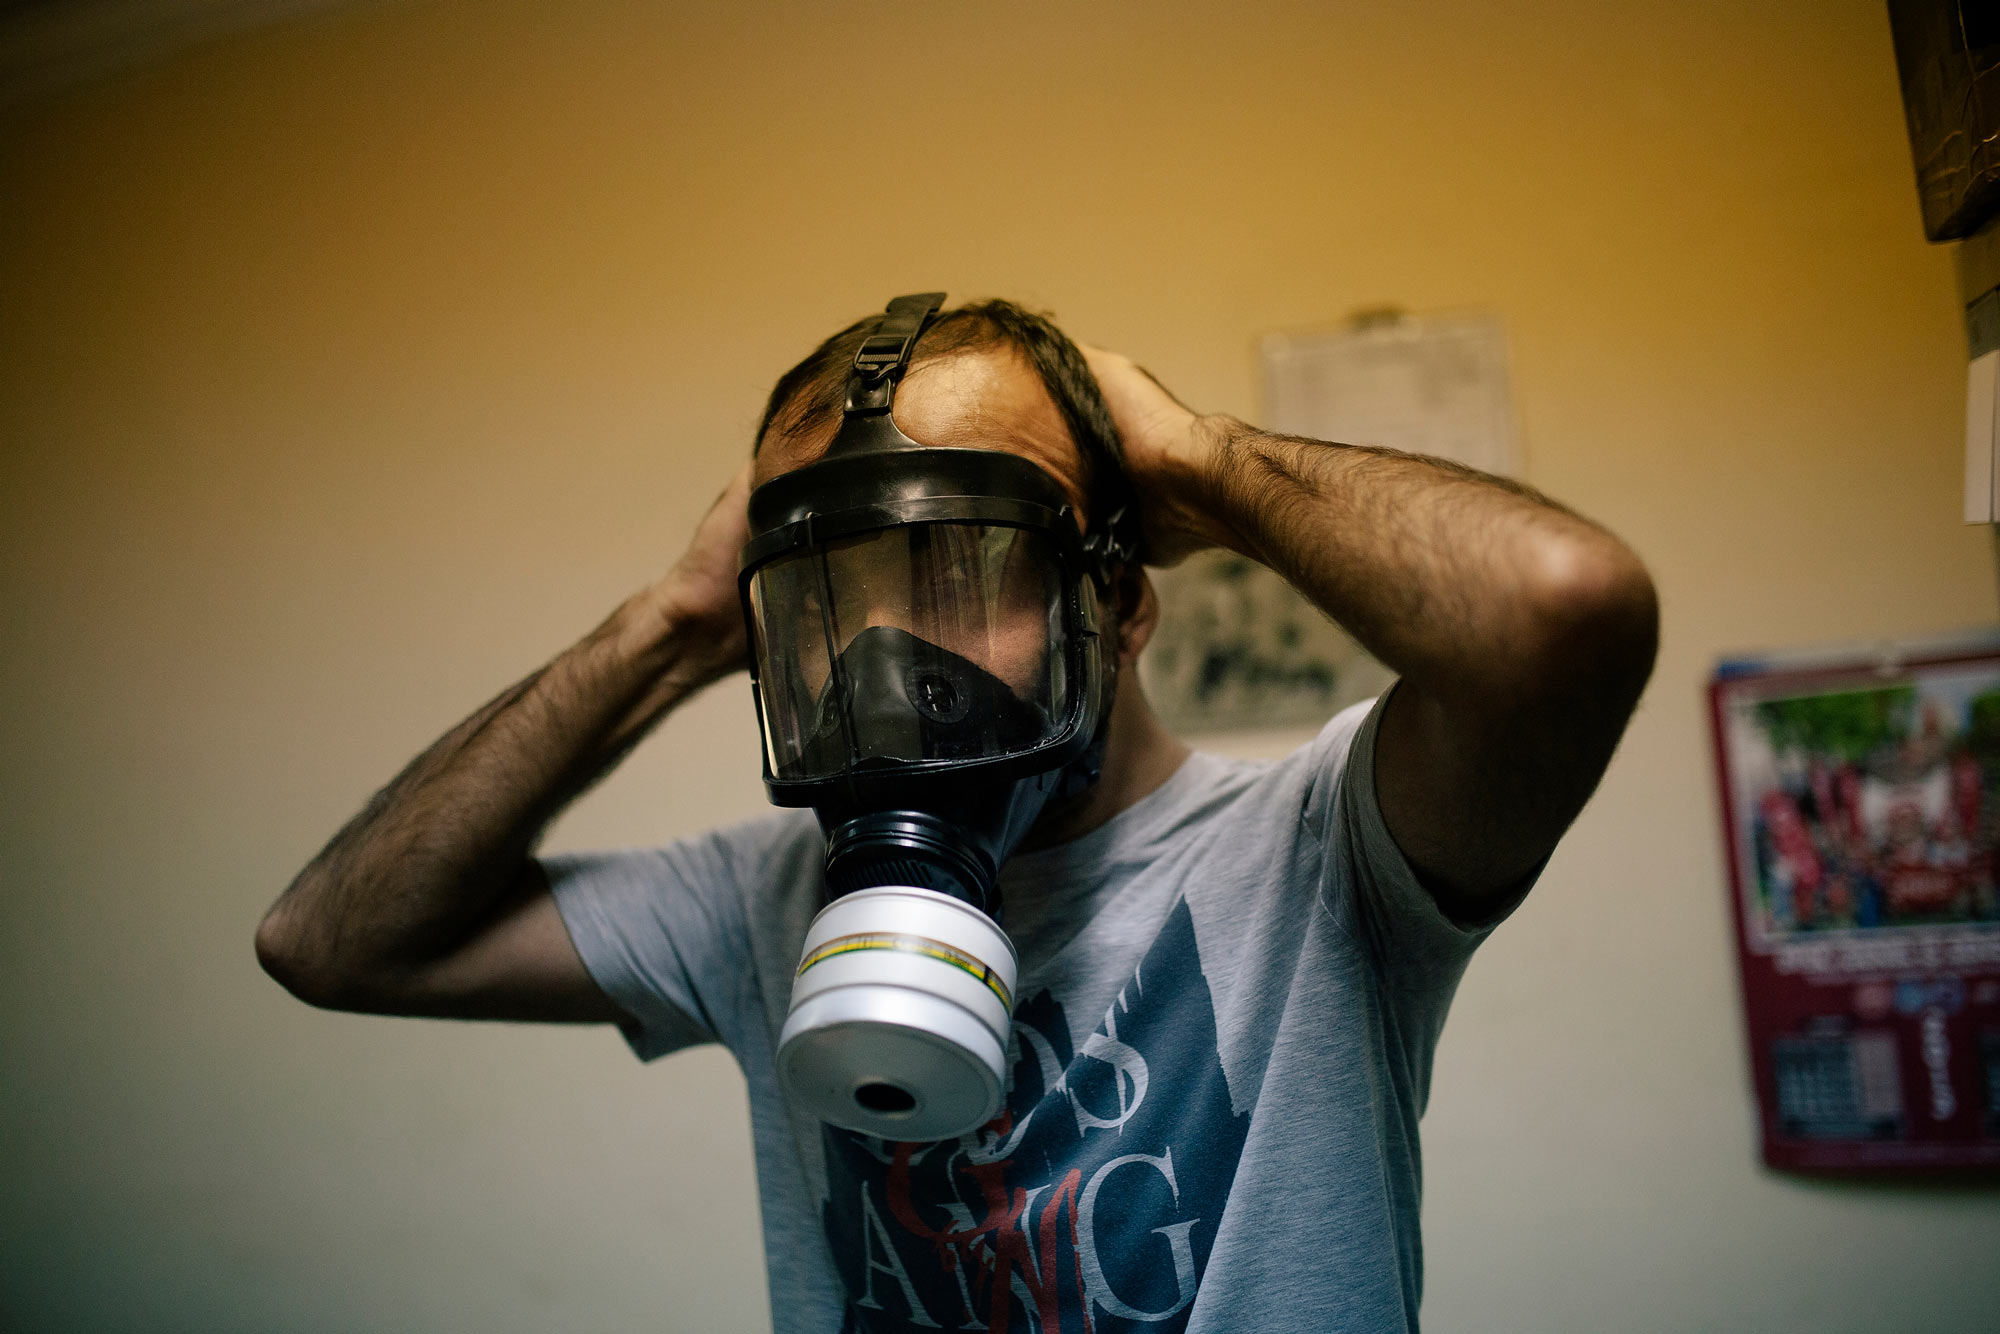 James Arthur Allen free turkey man wearing a gas mask the south west collective of photography